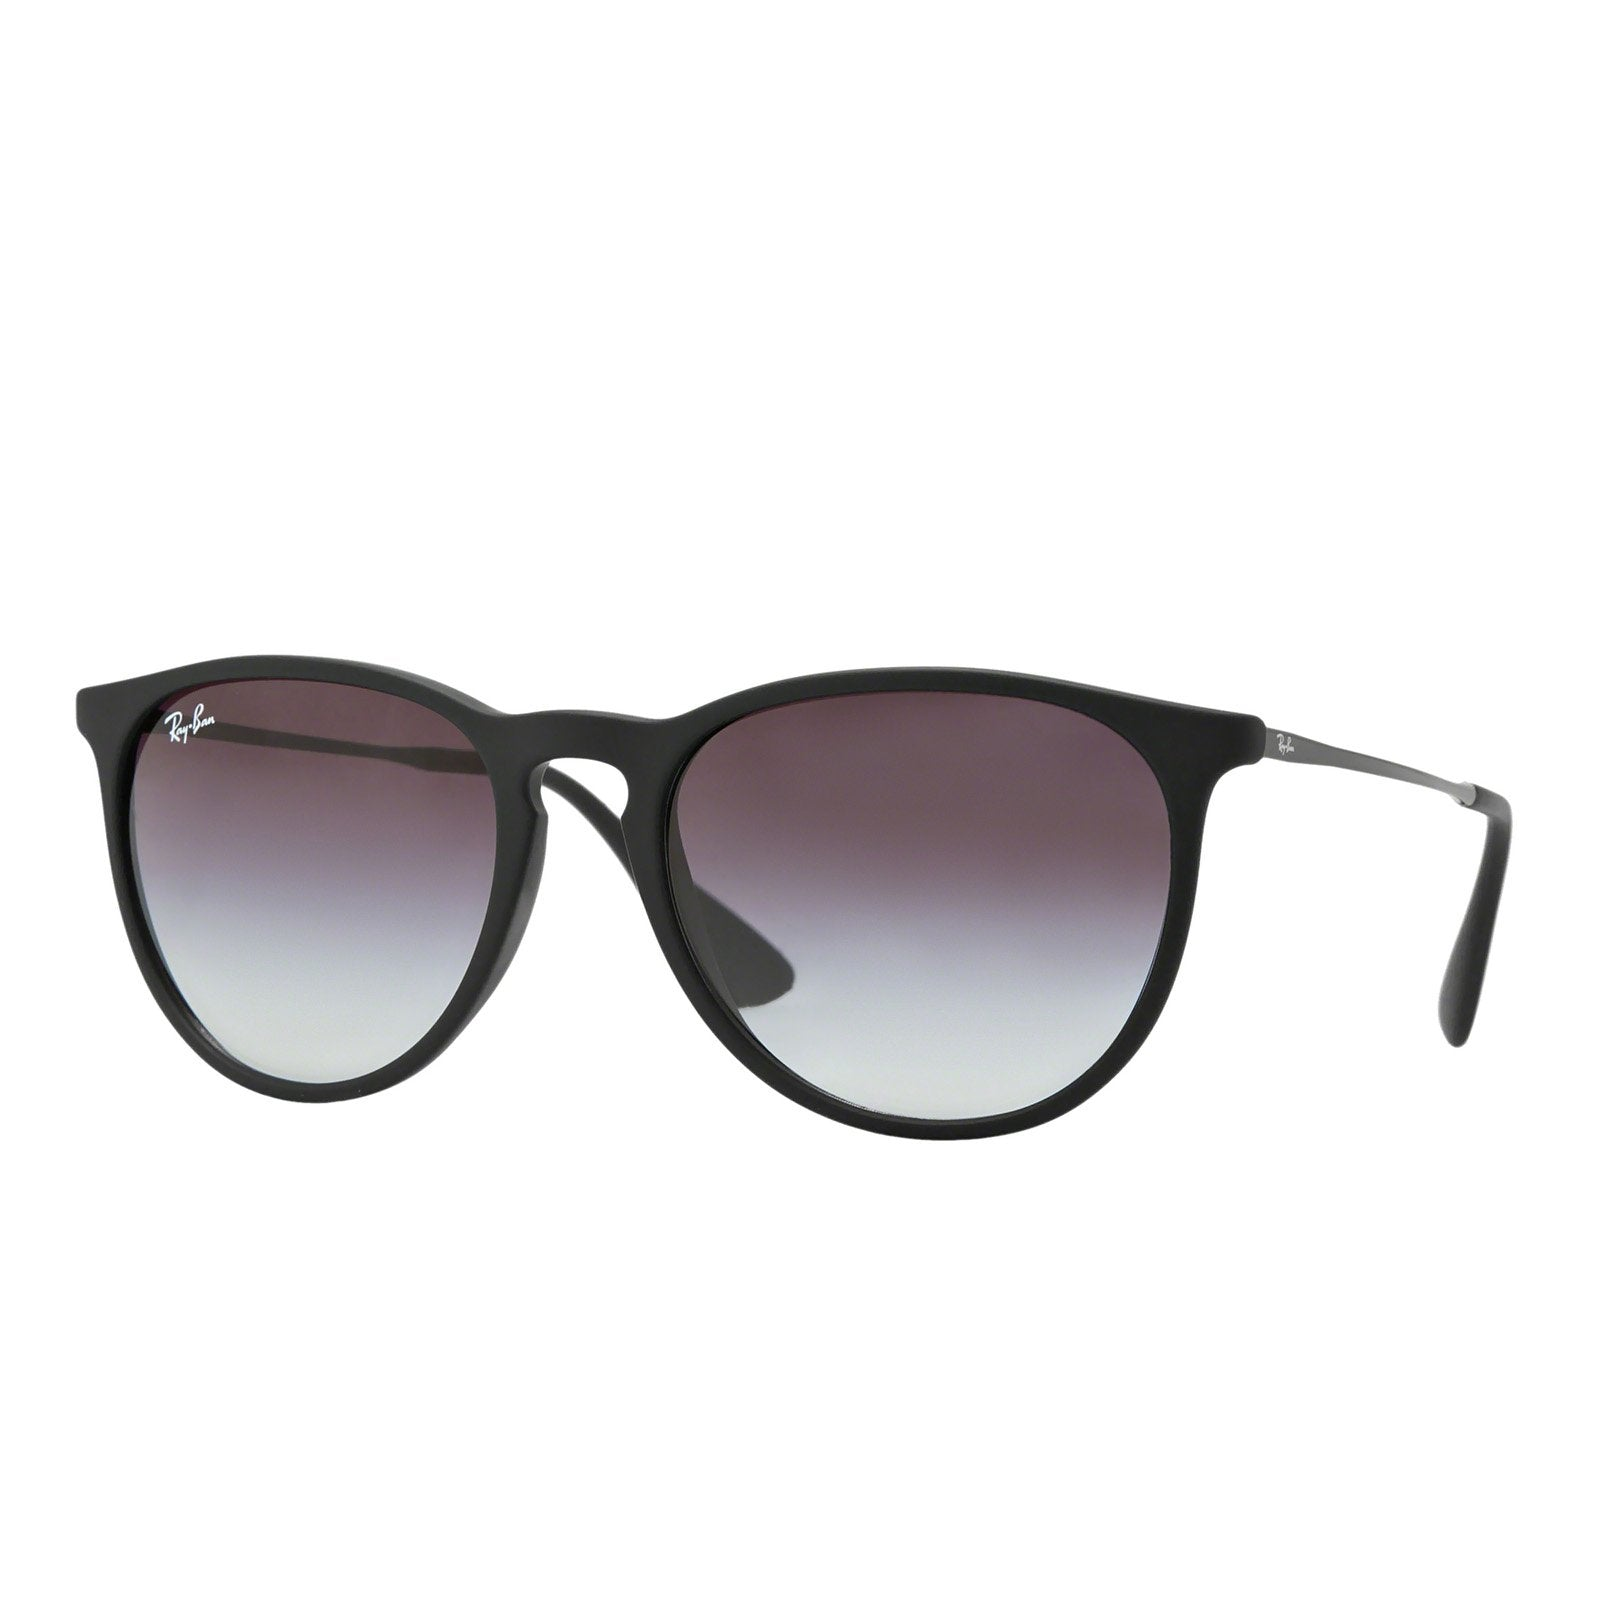 Ray-Ban RB4171 622/8G Sunglasses